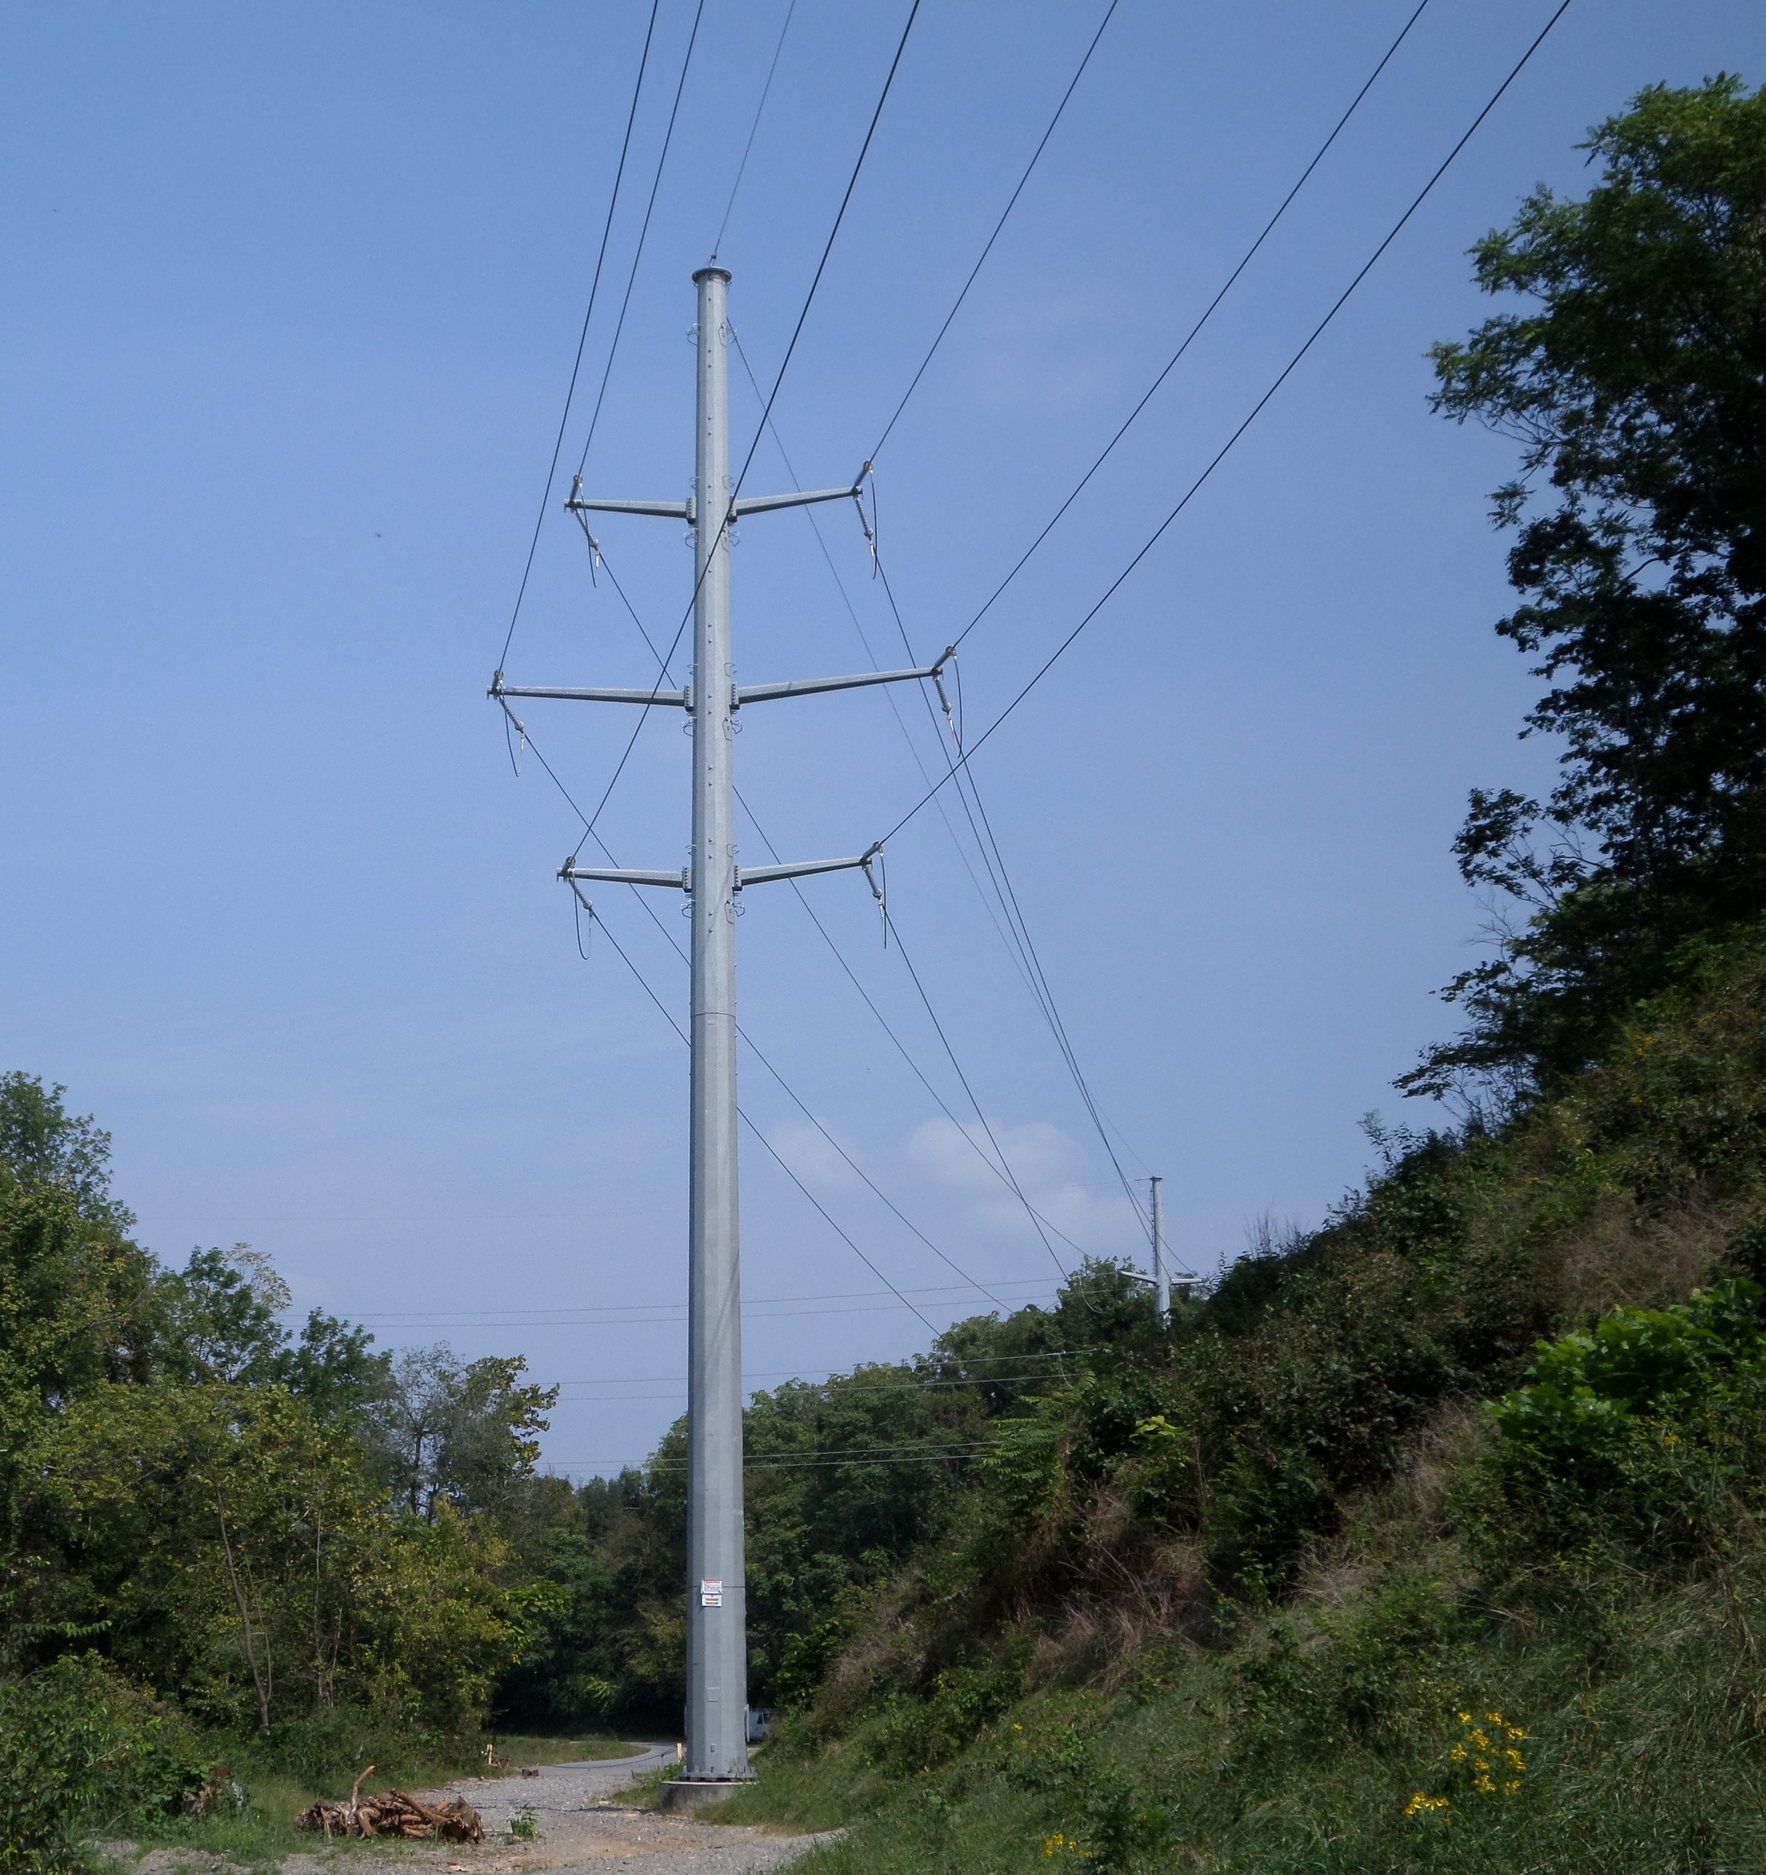 Monopole transmission line similar to the type that has been included in the AEP proposal  Source: www.aeptransmission.com